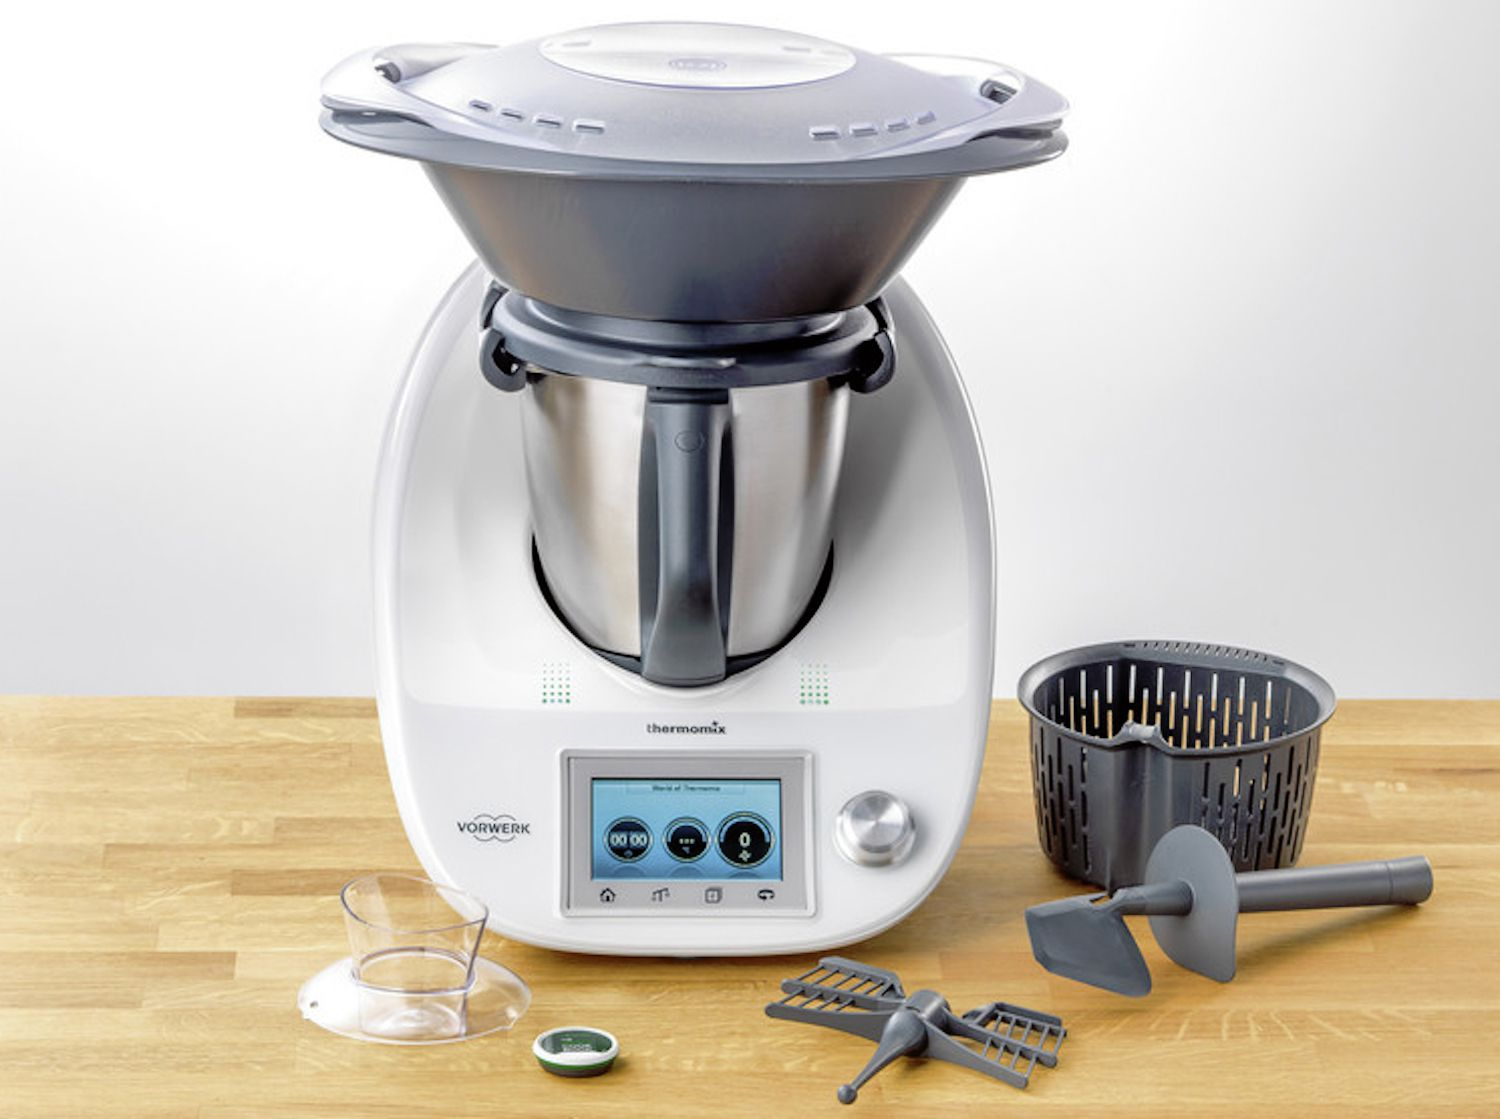 Is a Thermomix Worth the Price?